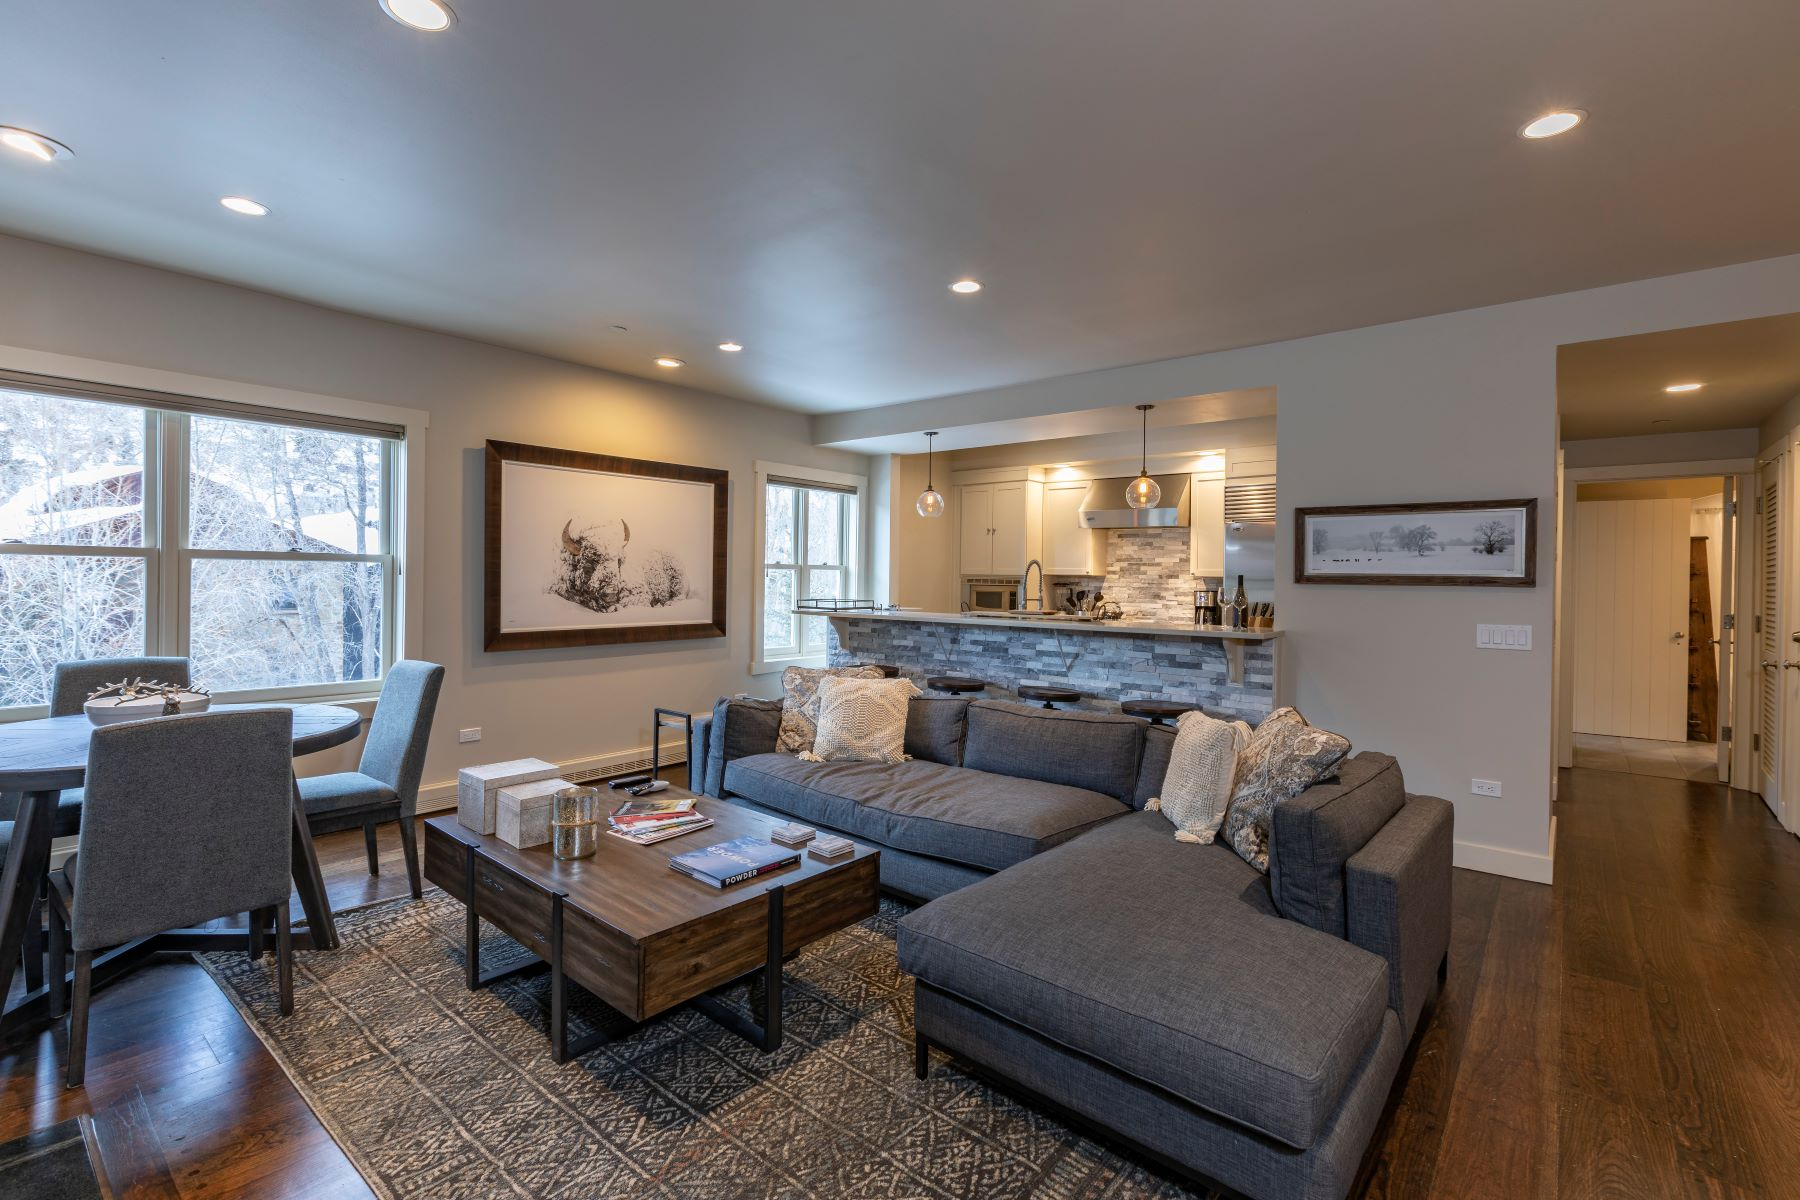 Condominiums for Sale at Element 52, Unit A-12 368 S Davis Street, Unit A-12 Telluride, Colorado 81435 United States